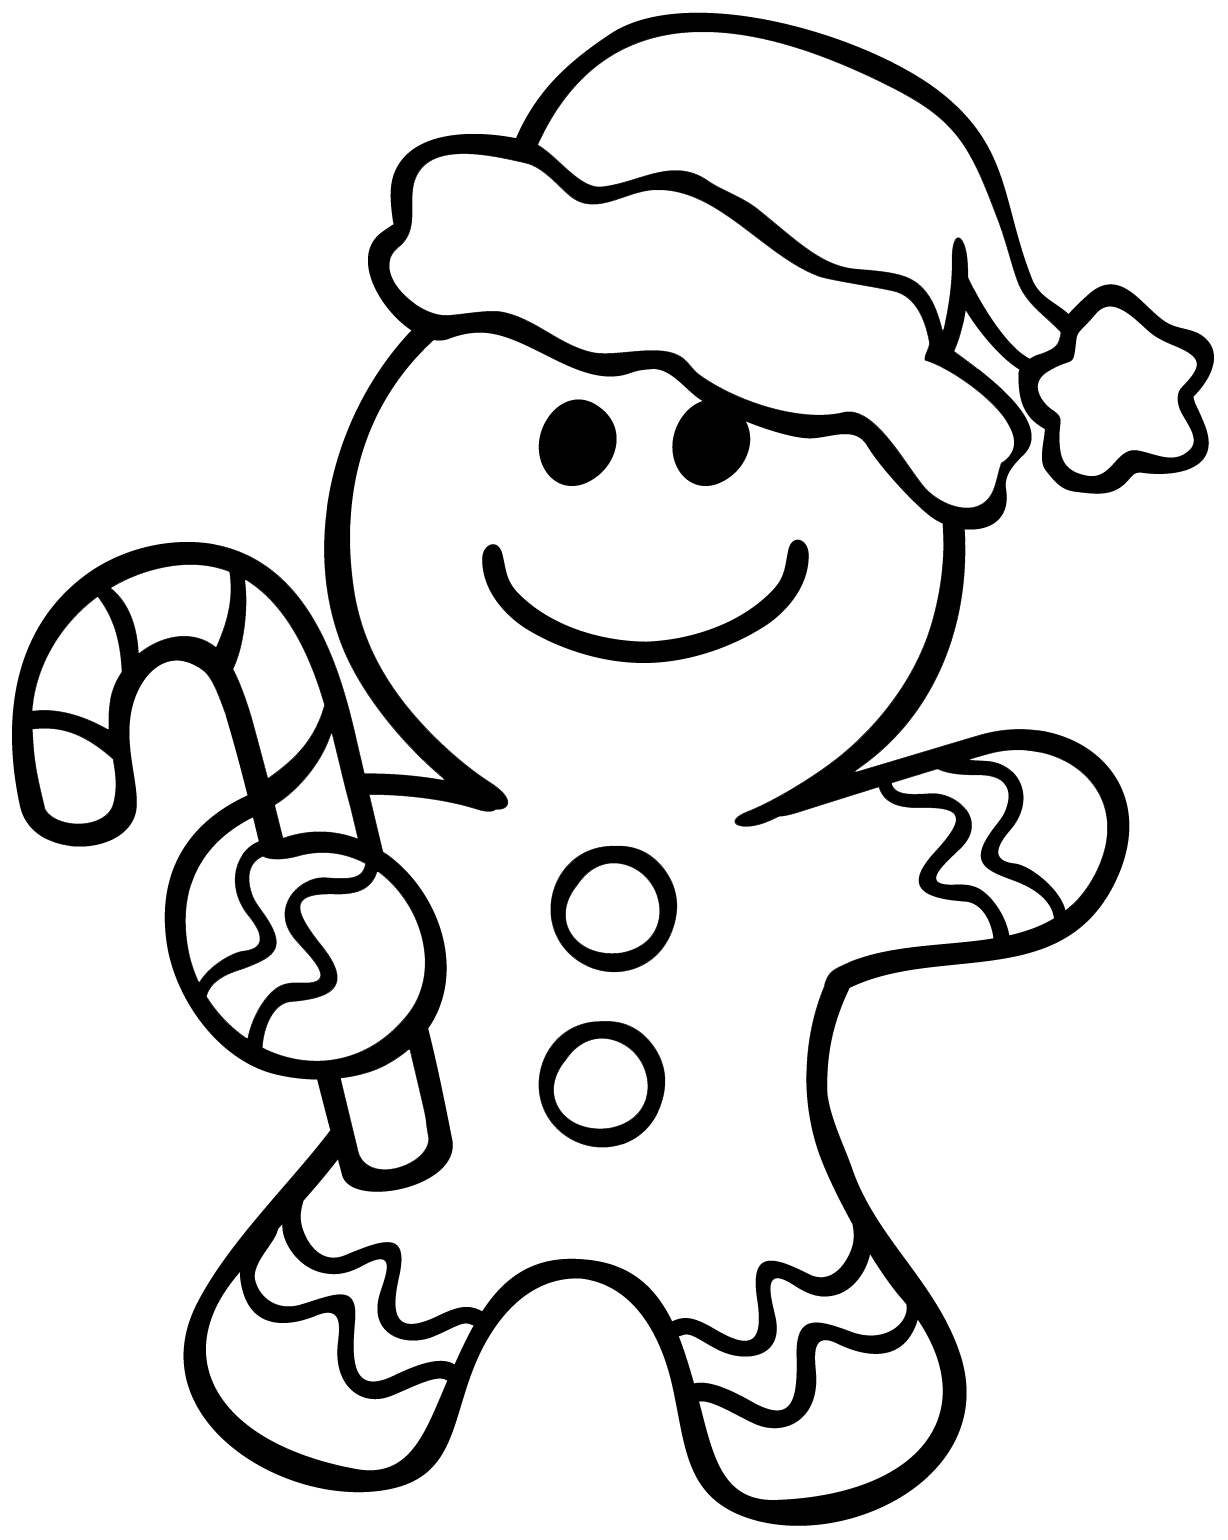 gingerbread man for coloring free printable gingerbread man coloring pages for kids gingerbread coloring for man